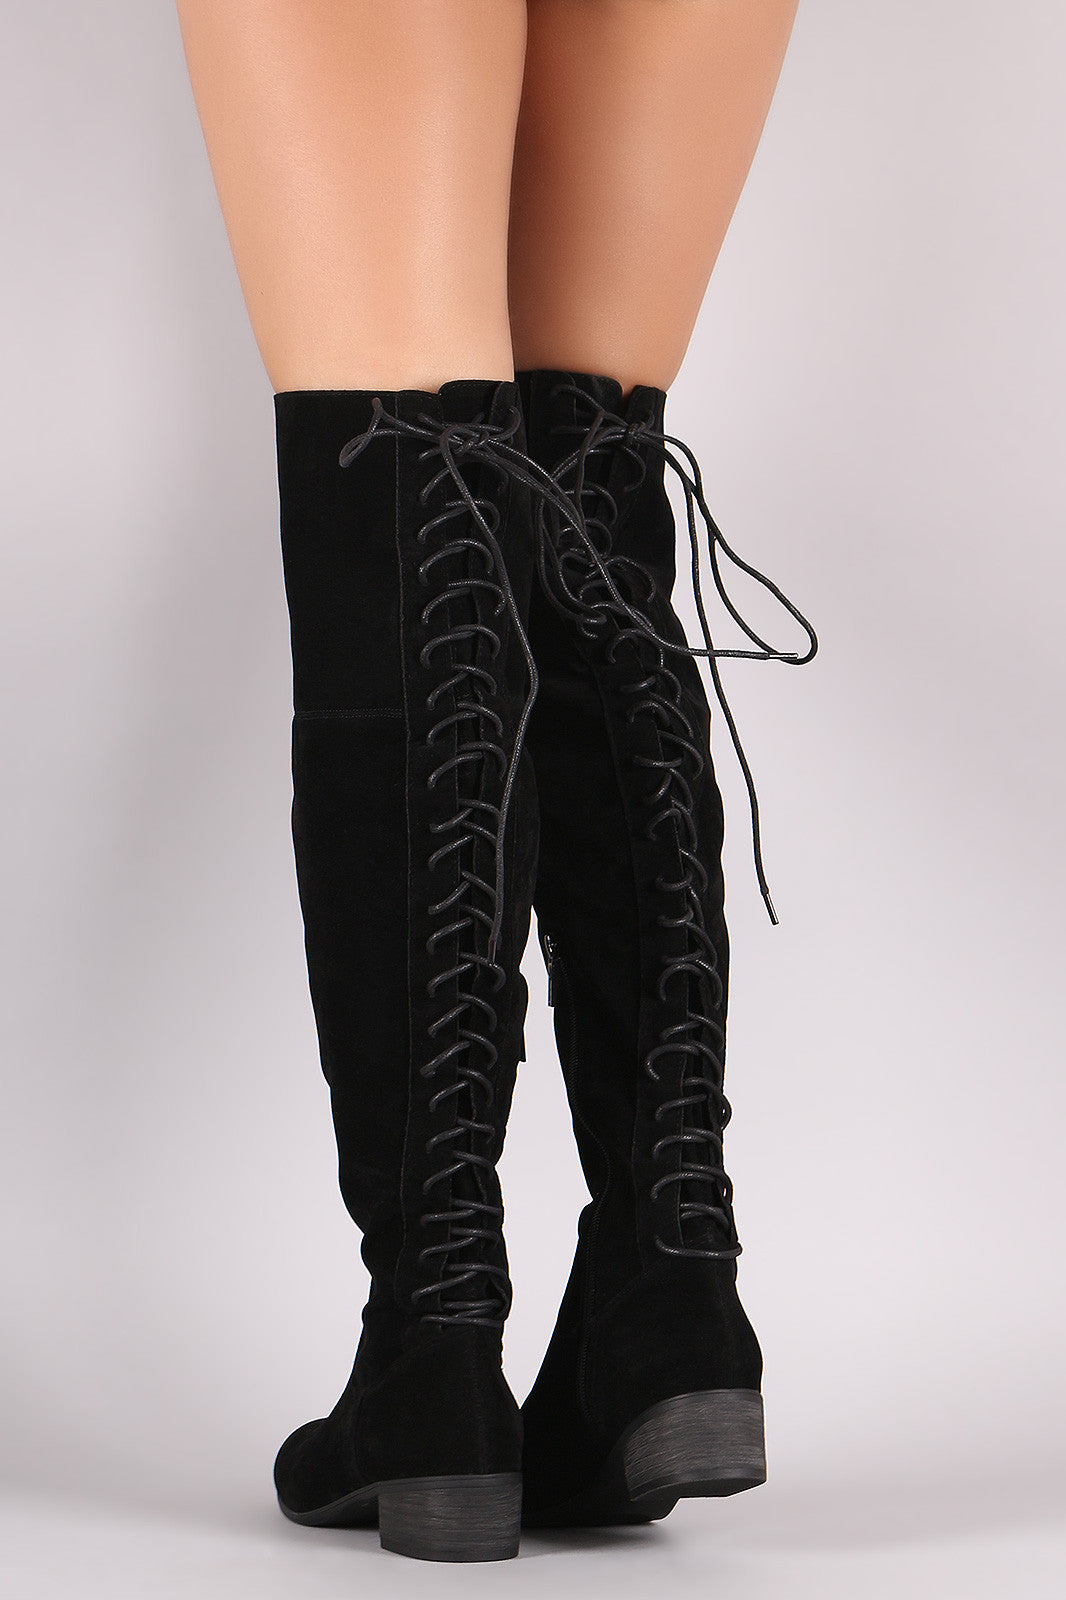 Maeve Lave Up Back Boots - Black - Hapa Clothing